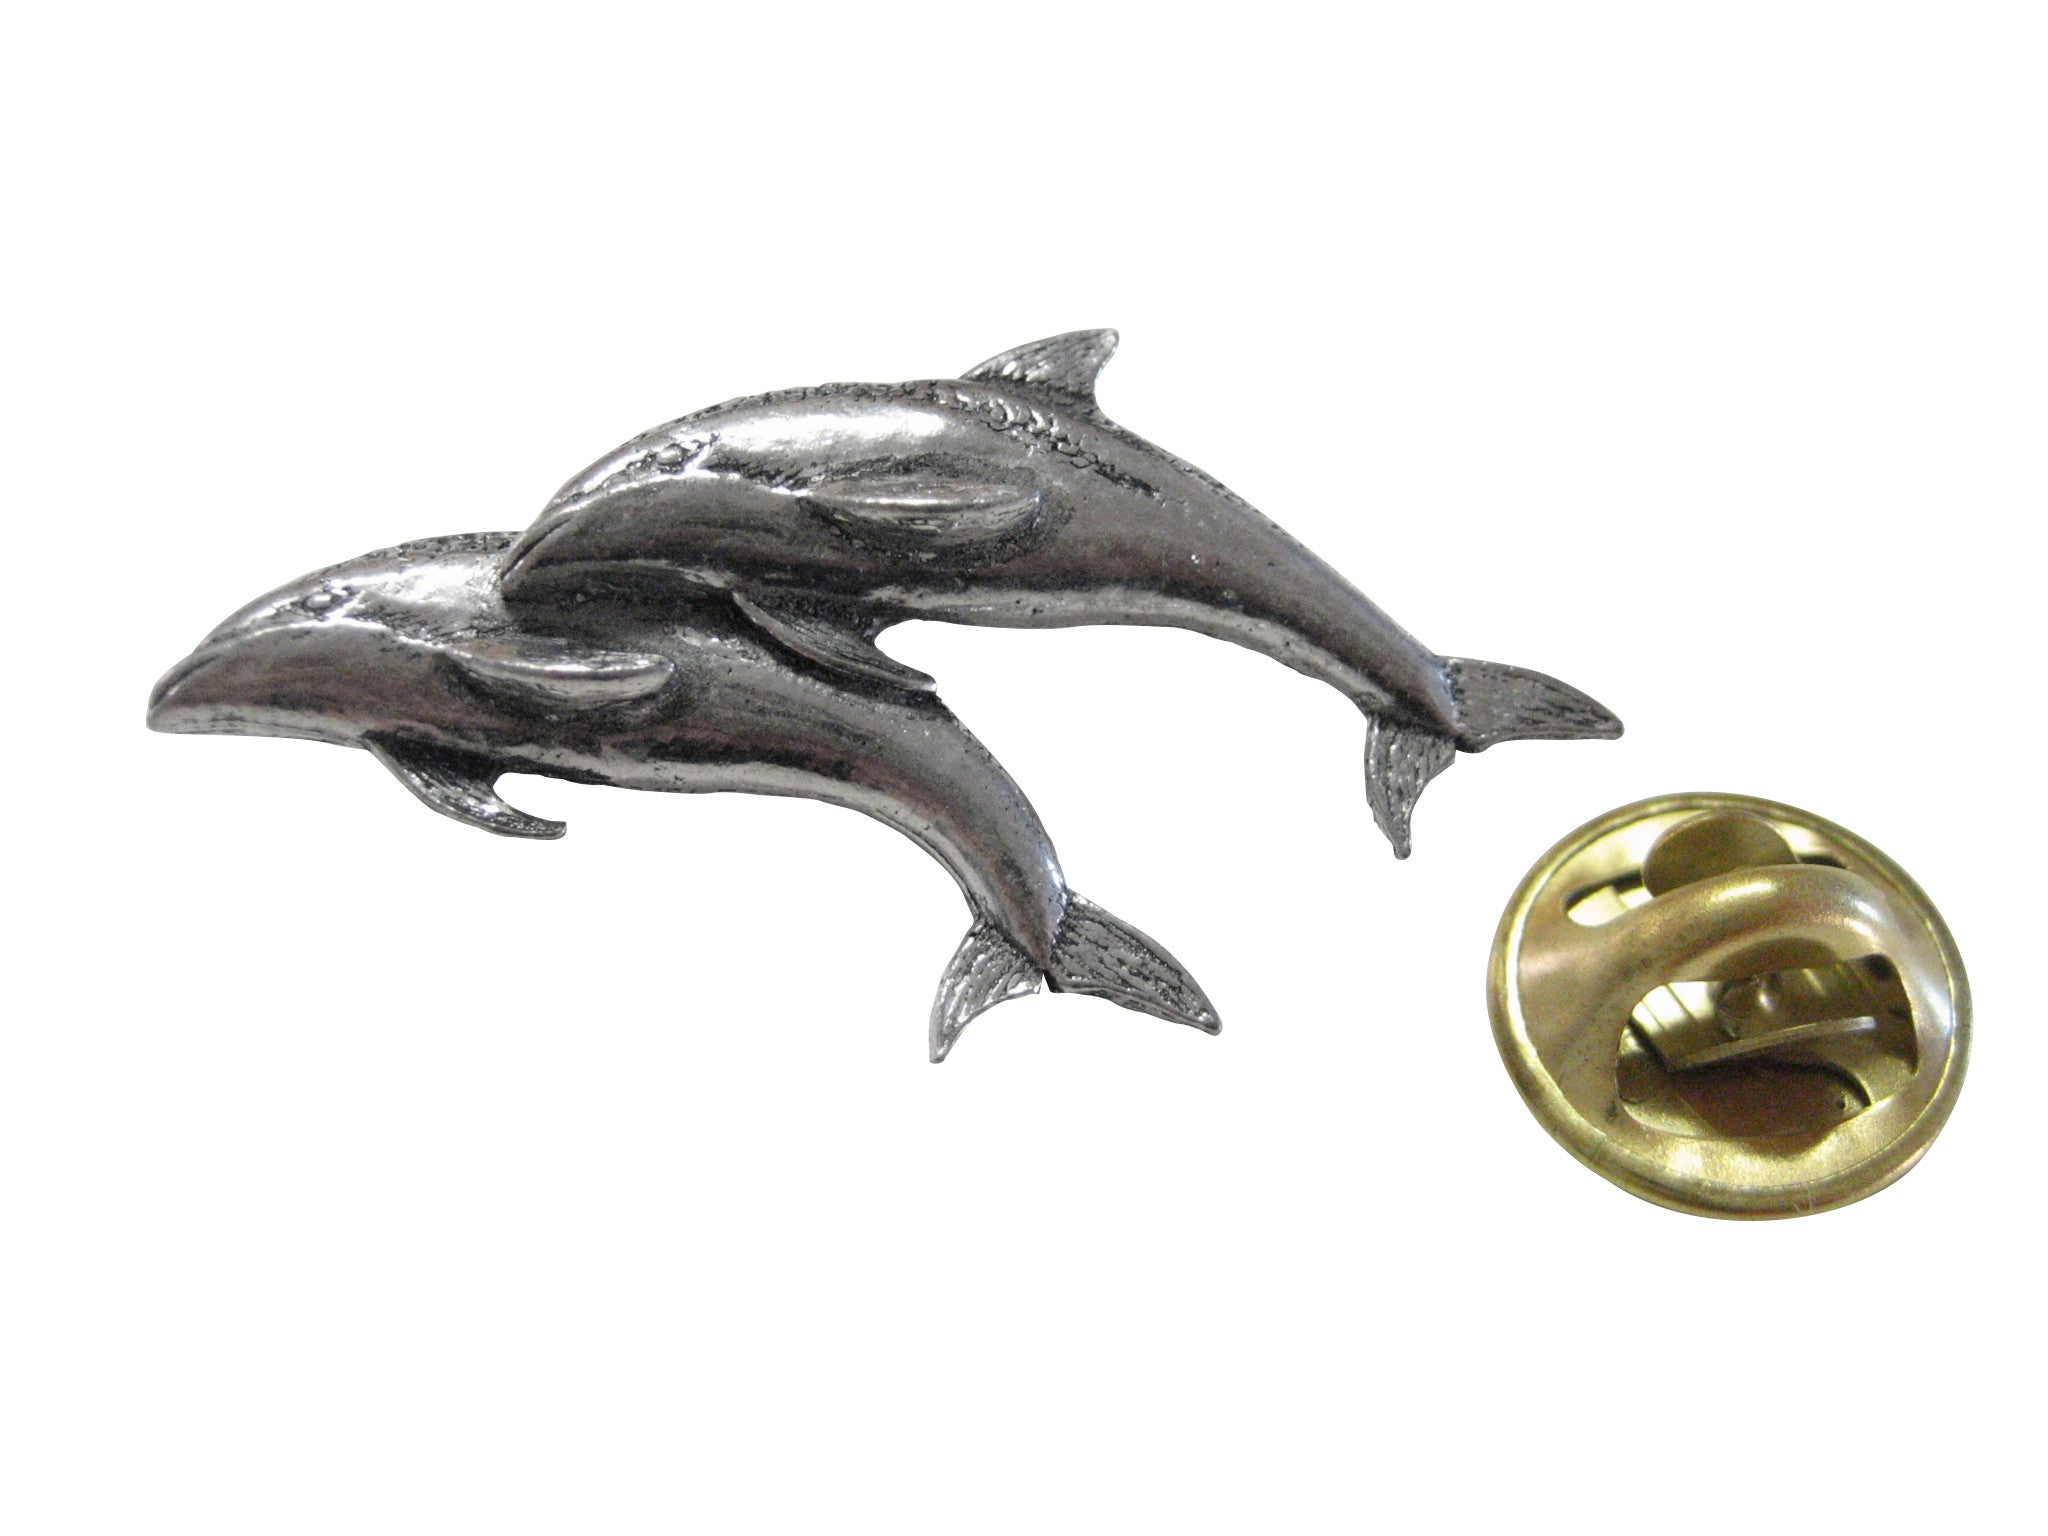 Pair of Dolphins Lapel Pin